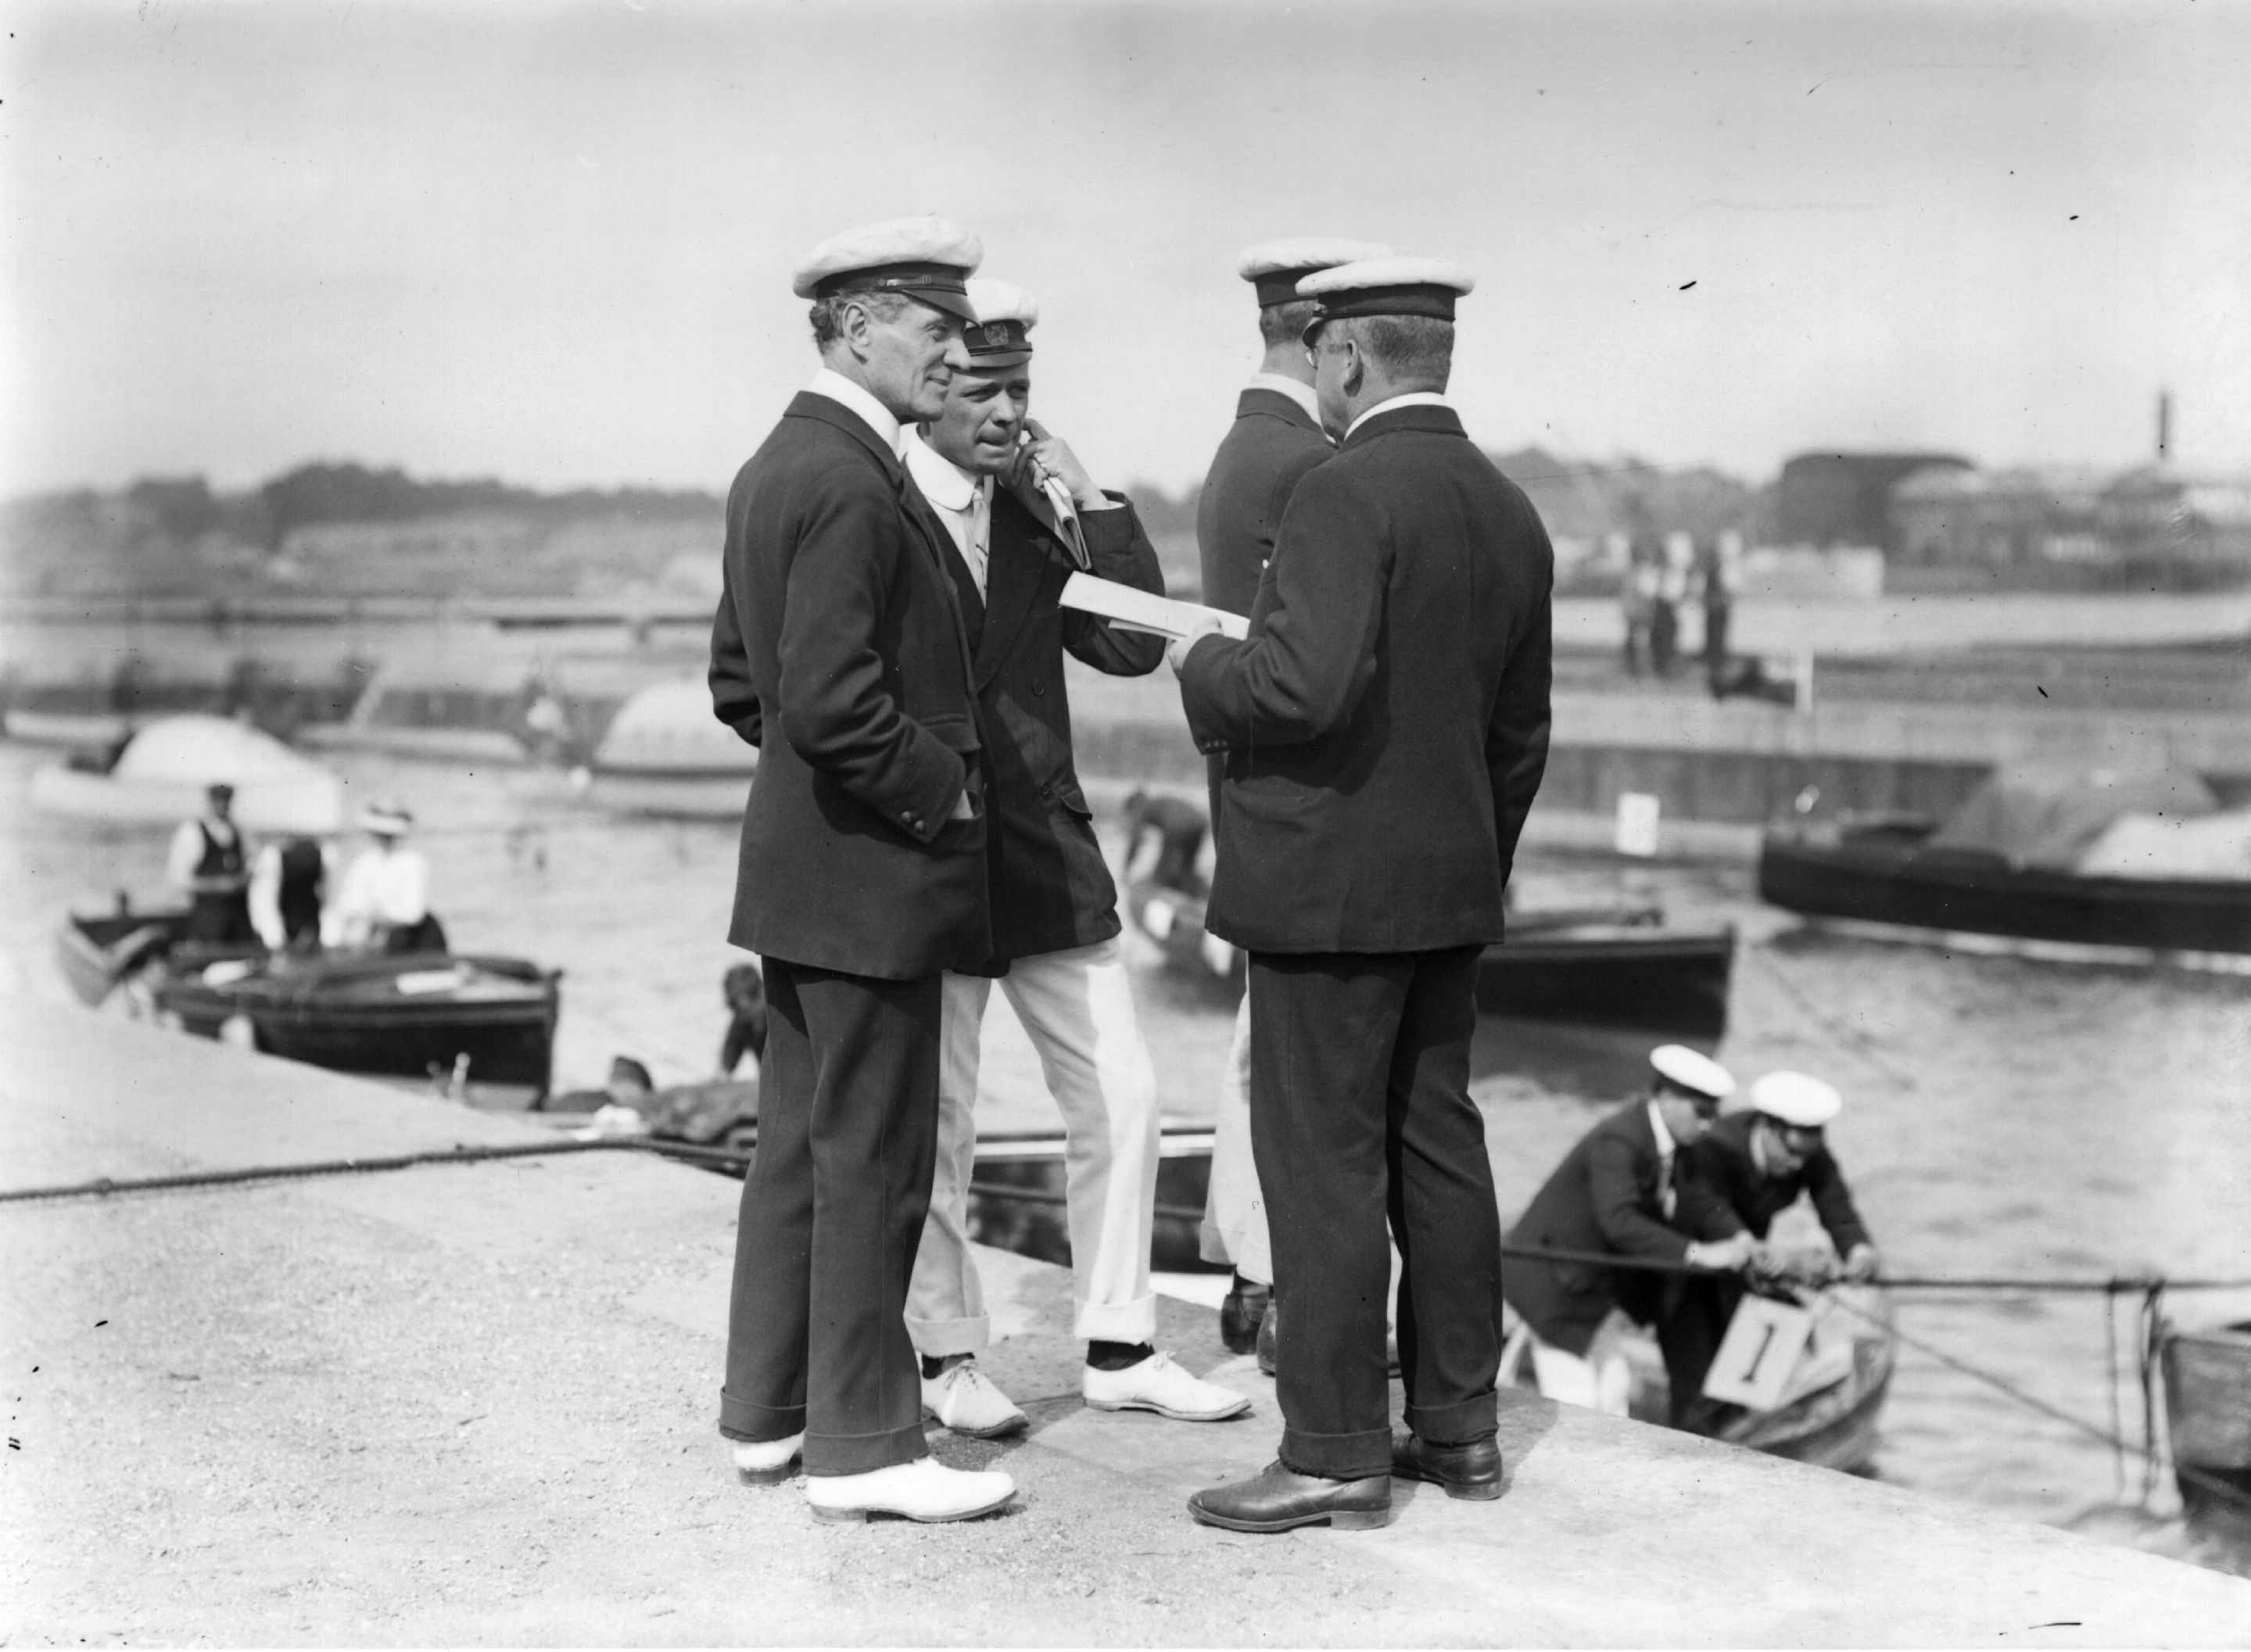 Commander Mansfield Smith-Cumming (later head of the British Secret Service), Professor Redwood and Bernard Redwood at the Motor Yacht Club Reliability Trials on Southampton Water, 1907. (Photo by Topical Press Agency/Getty Images)